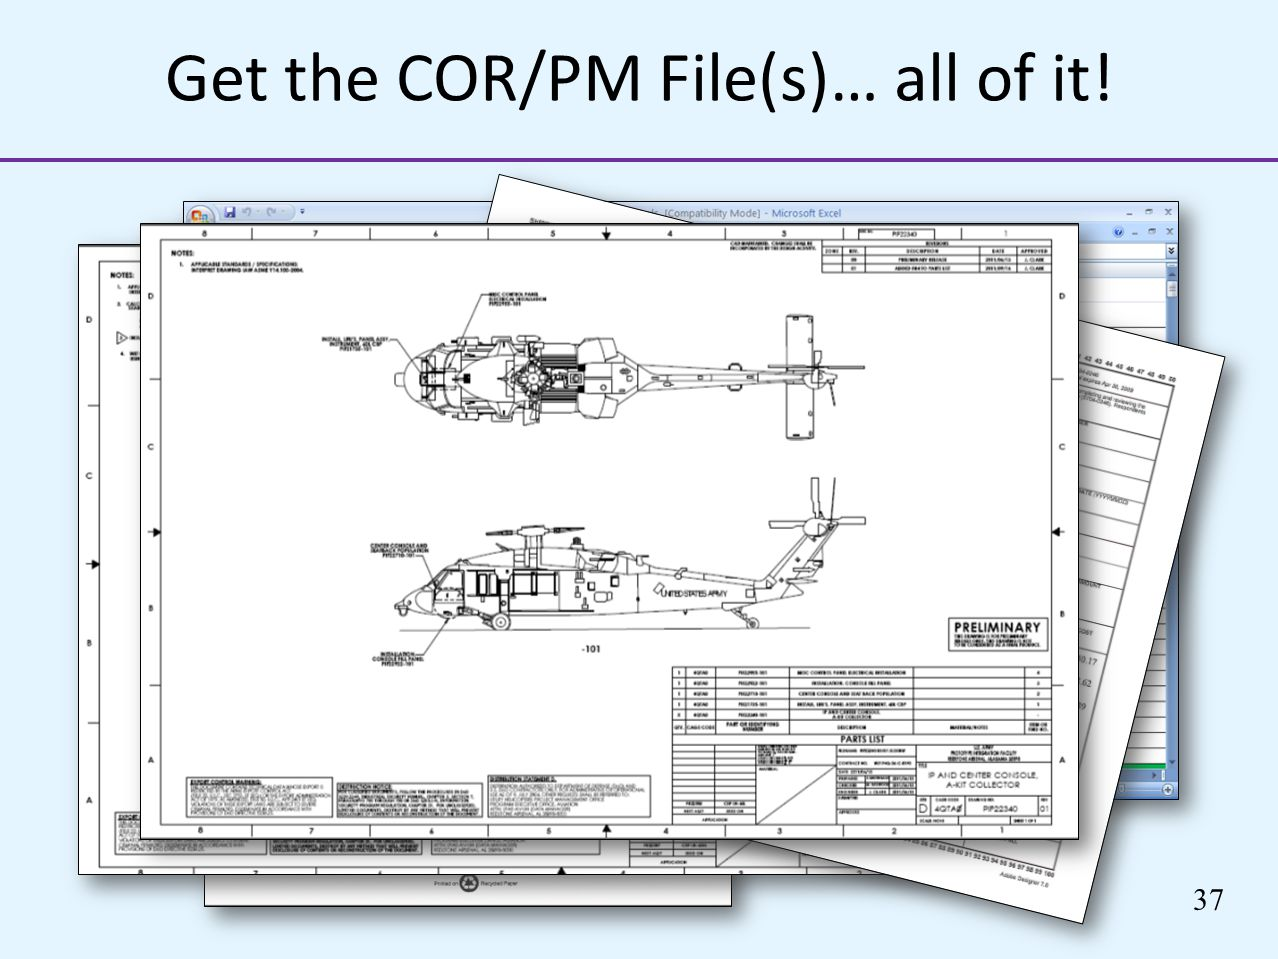 Get the COR/PM File(s)… all of it!